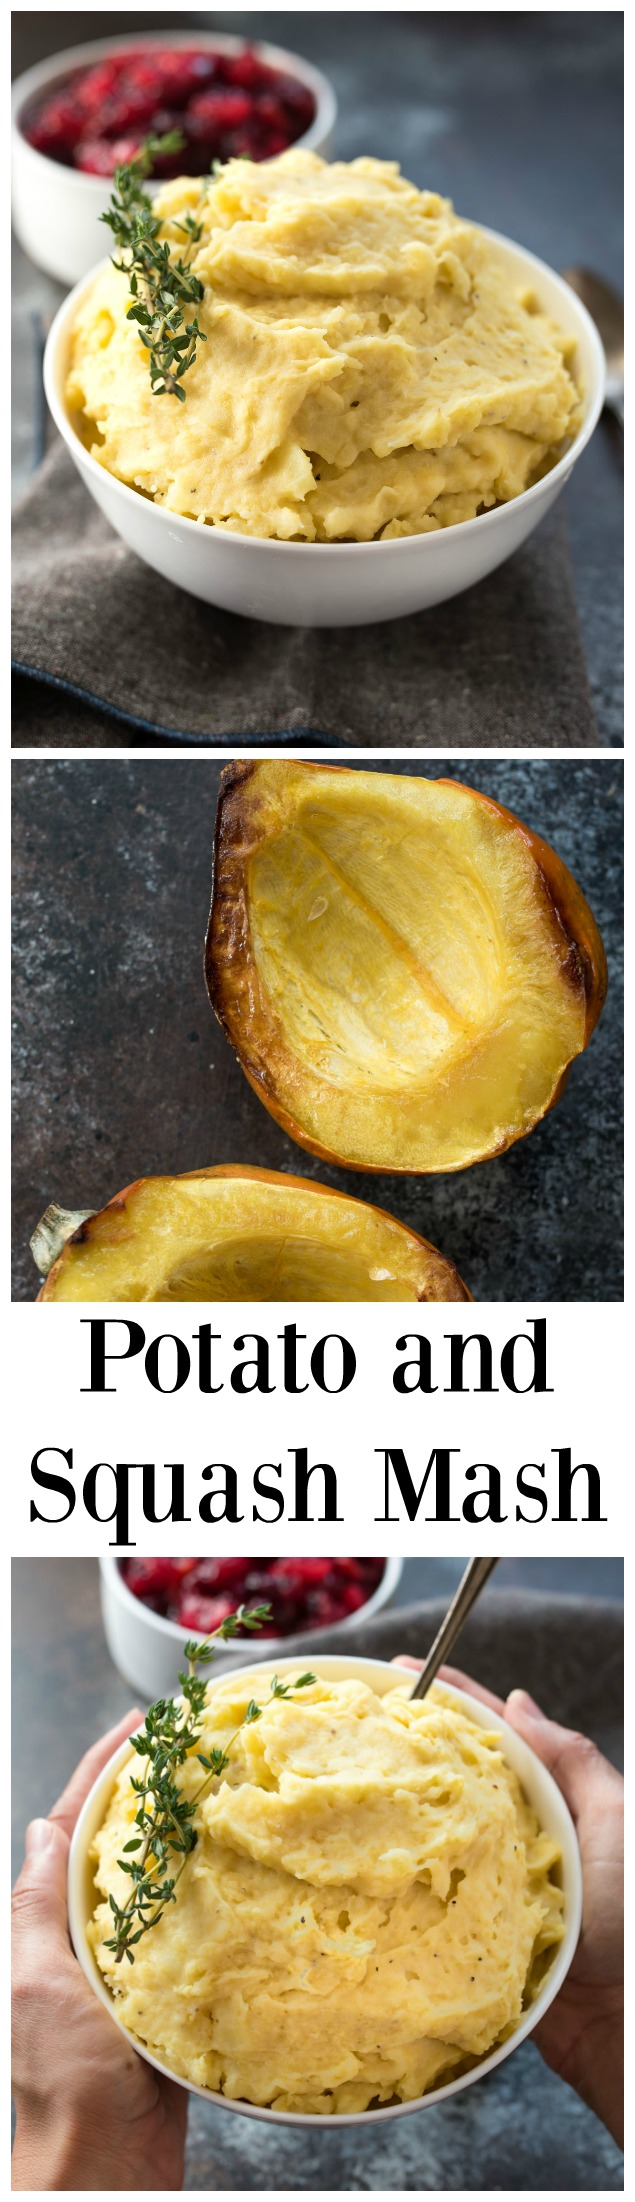 Squash and Potato Mash- looking for a healthier version of traditional mashed potatoes? Come check out this recipe! #glutenfree ! | www.nutritiouseats.com